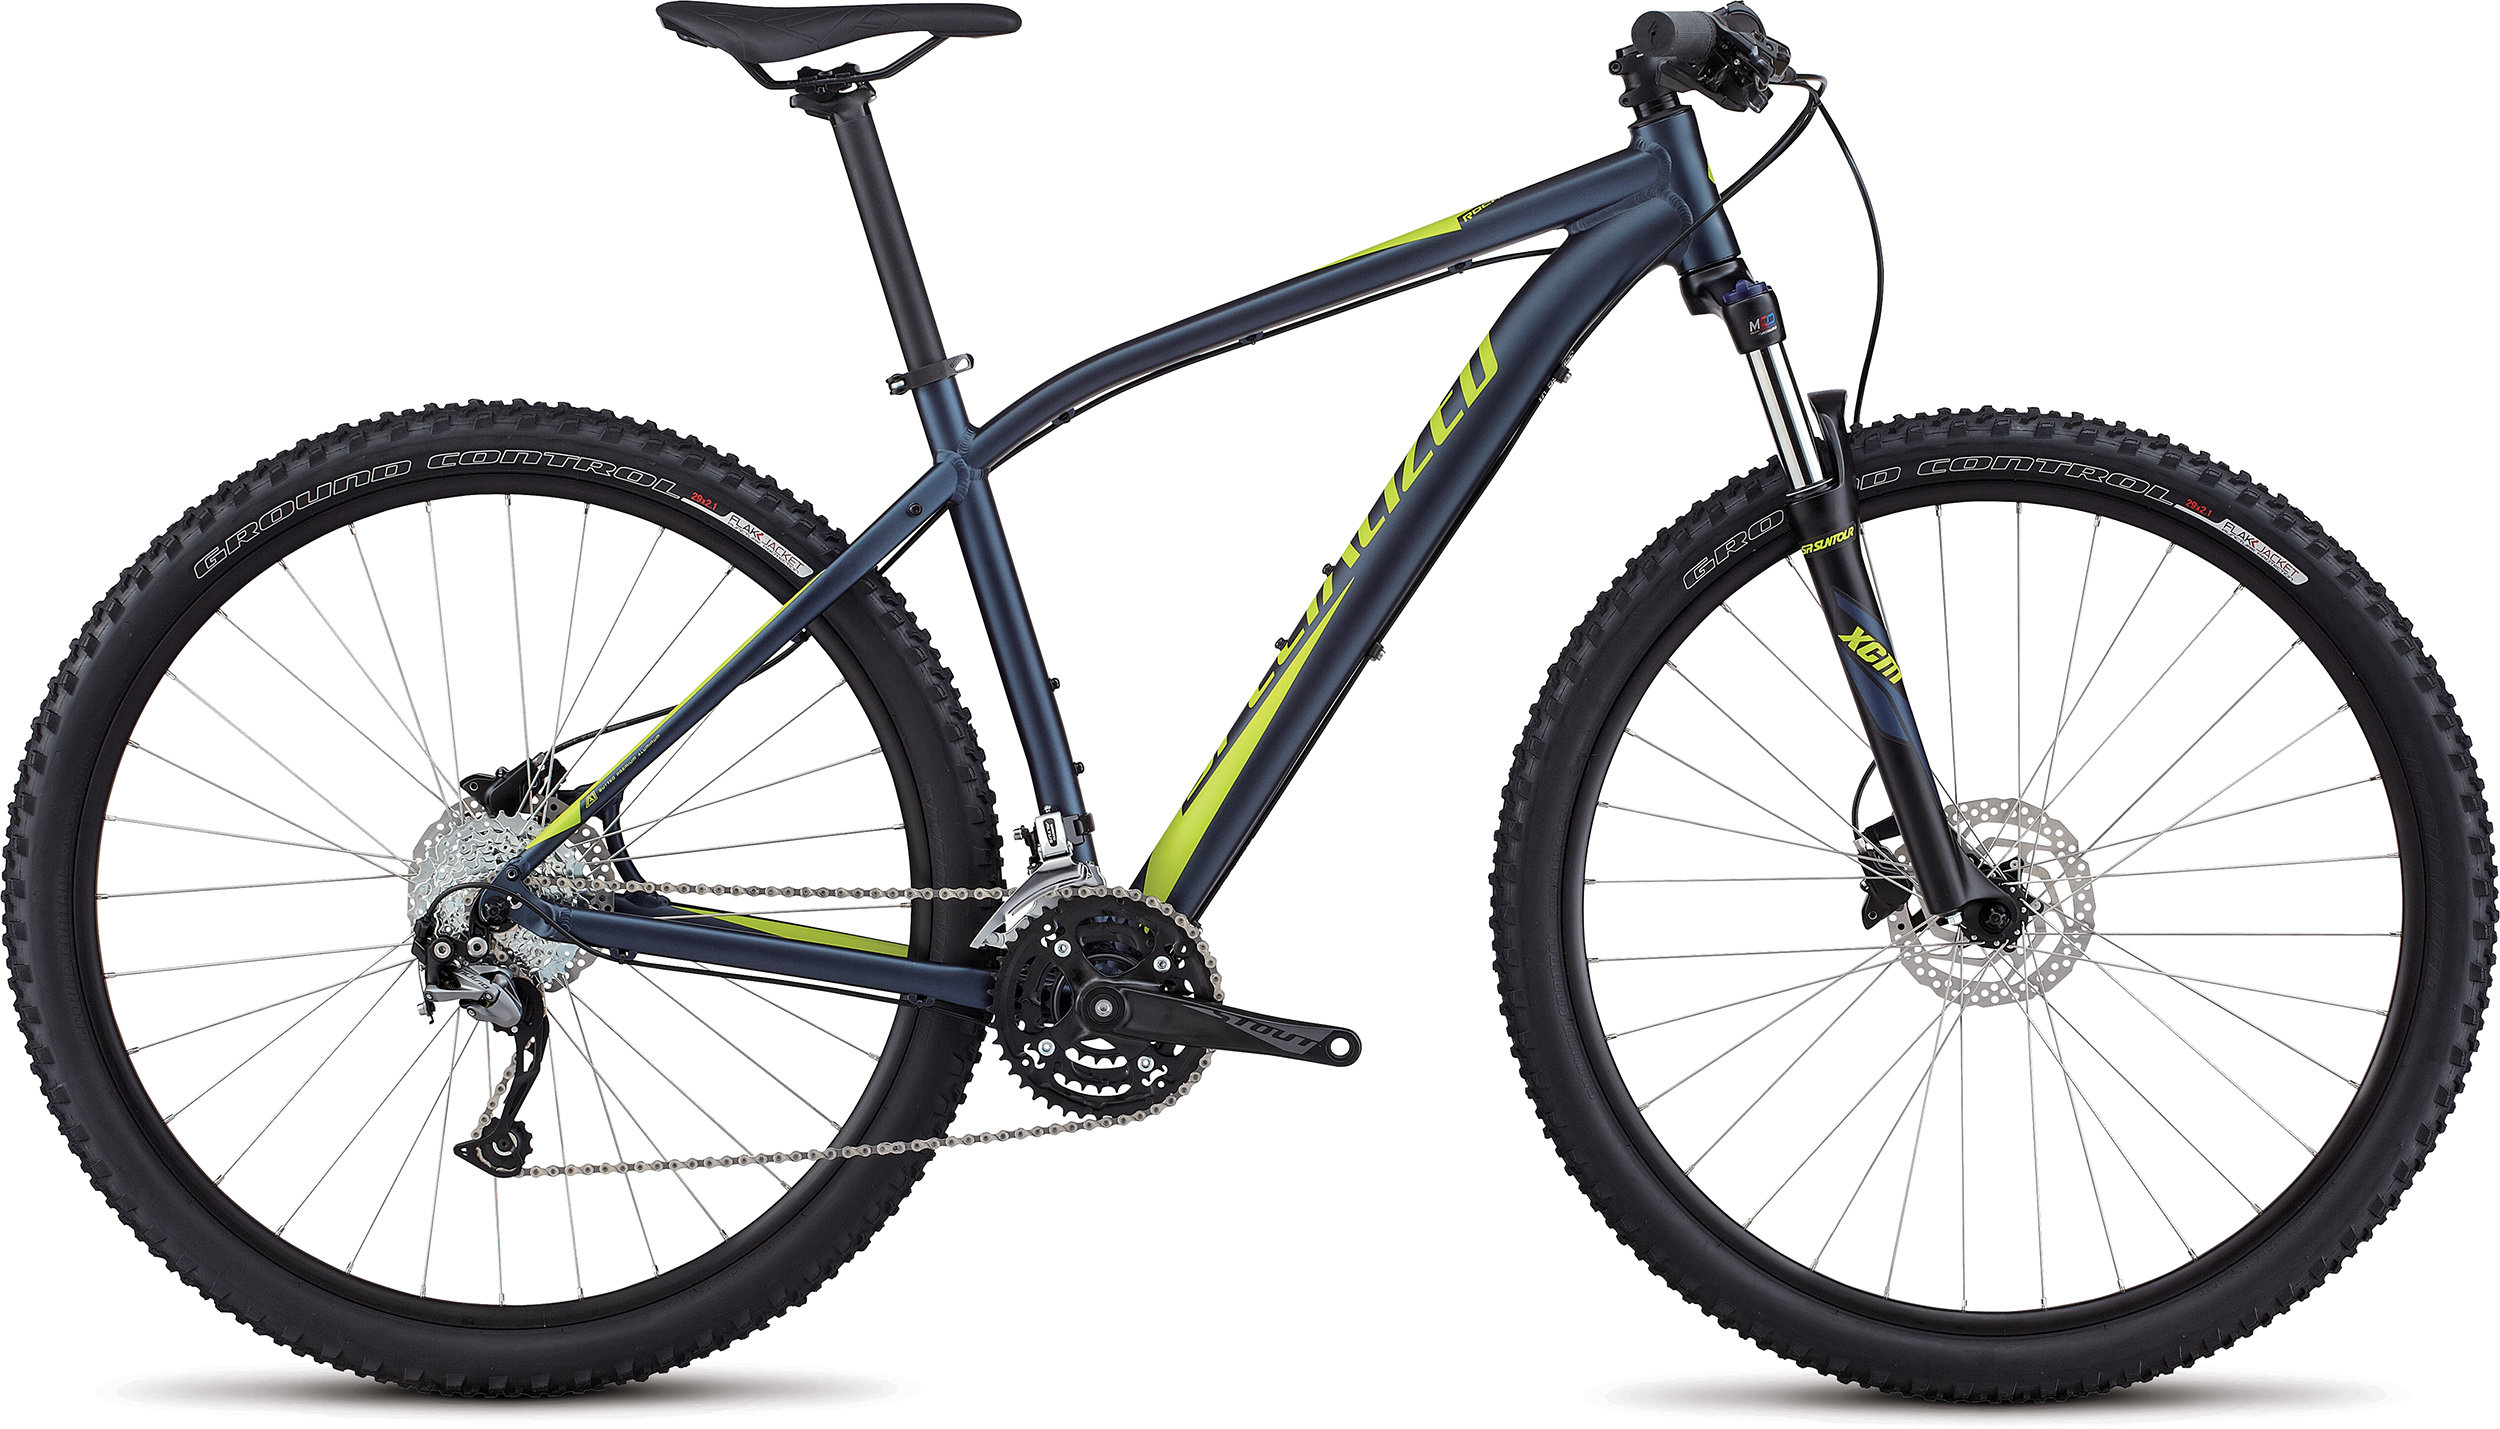 SPECIALIZED RH SPORT 29 NVY/HYP S - Bikedreams & Dustbikes